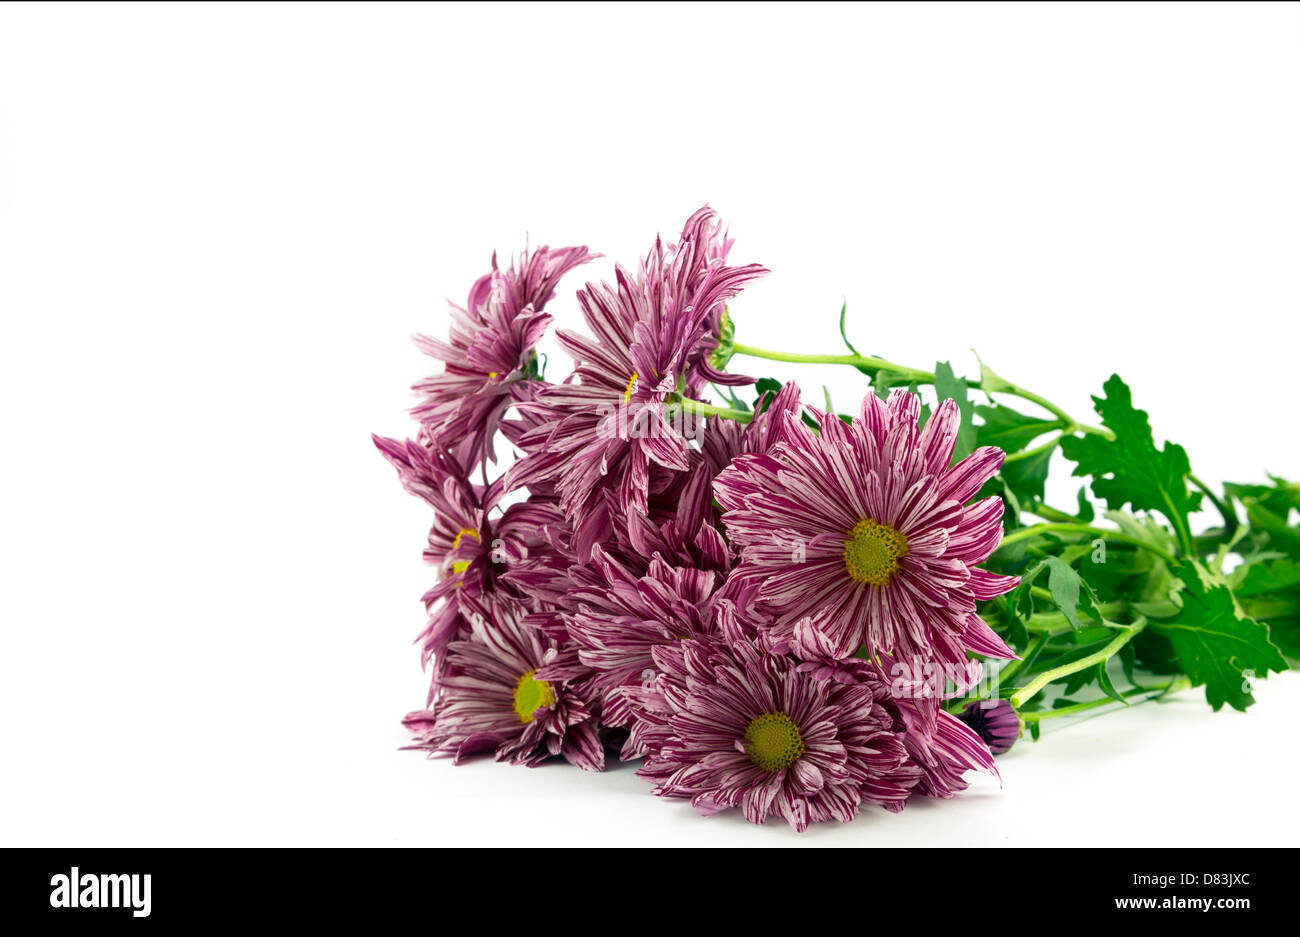 Red striped chrysanthemum flowers. - Stock Image